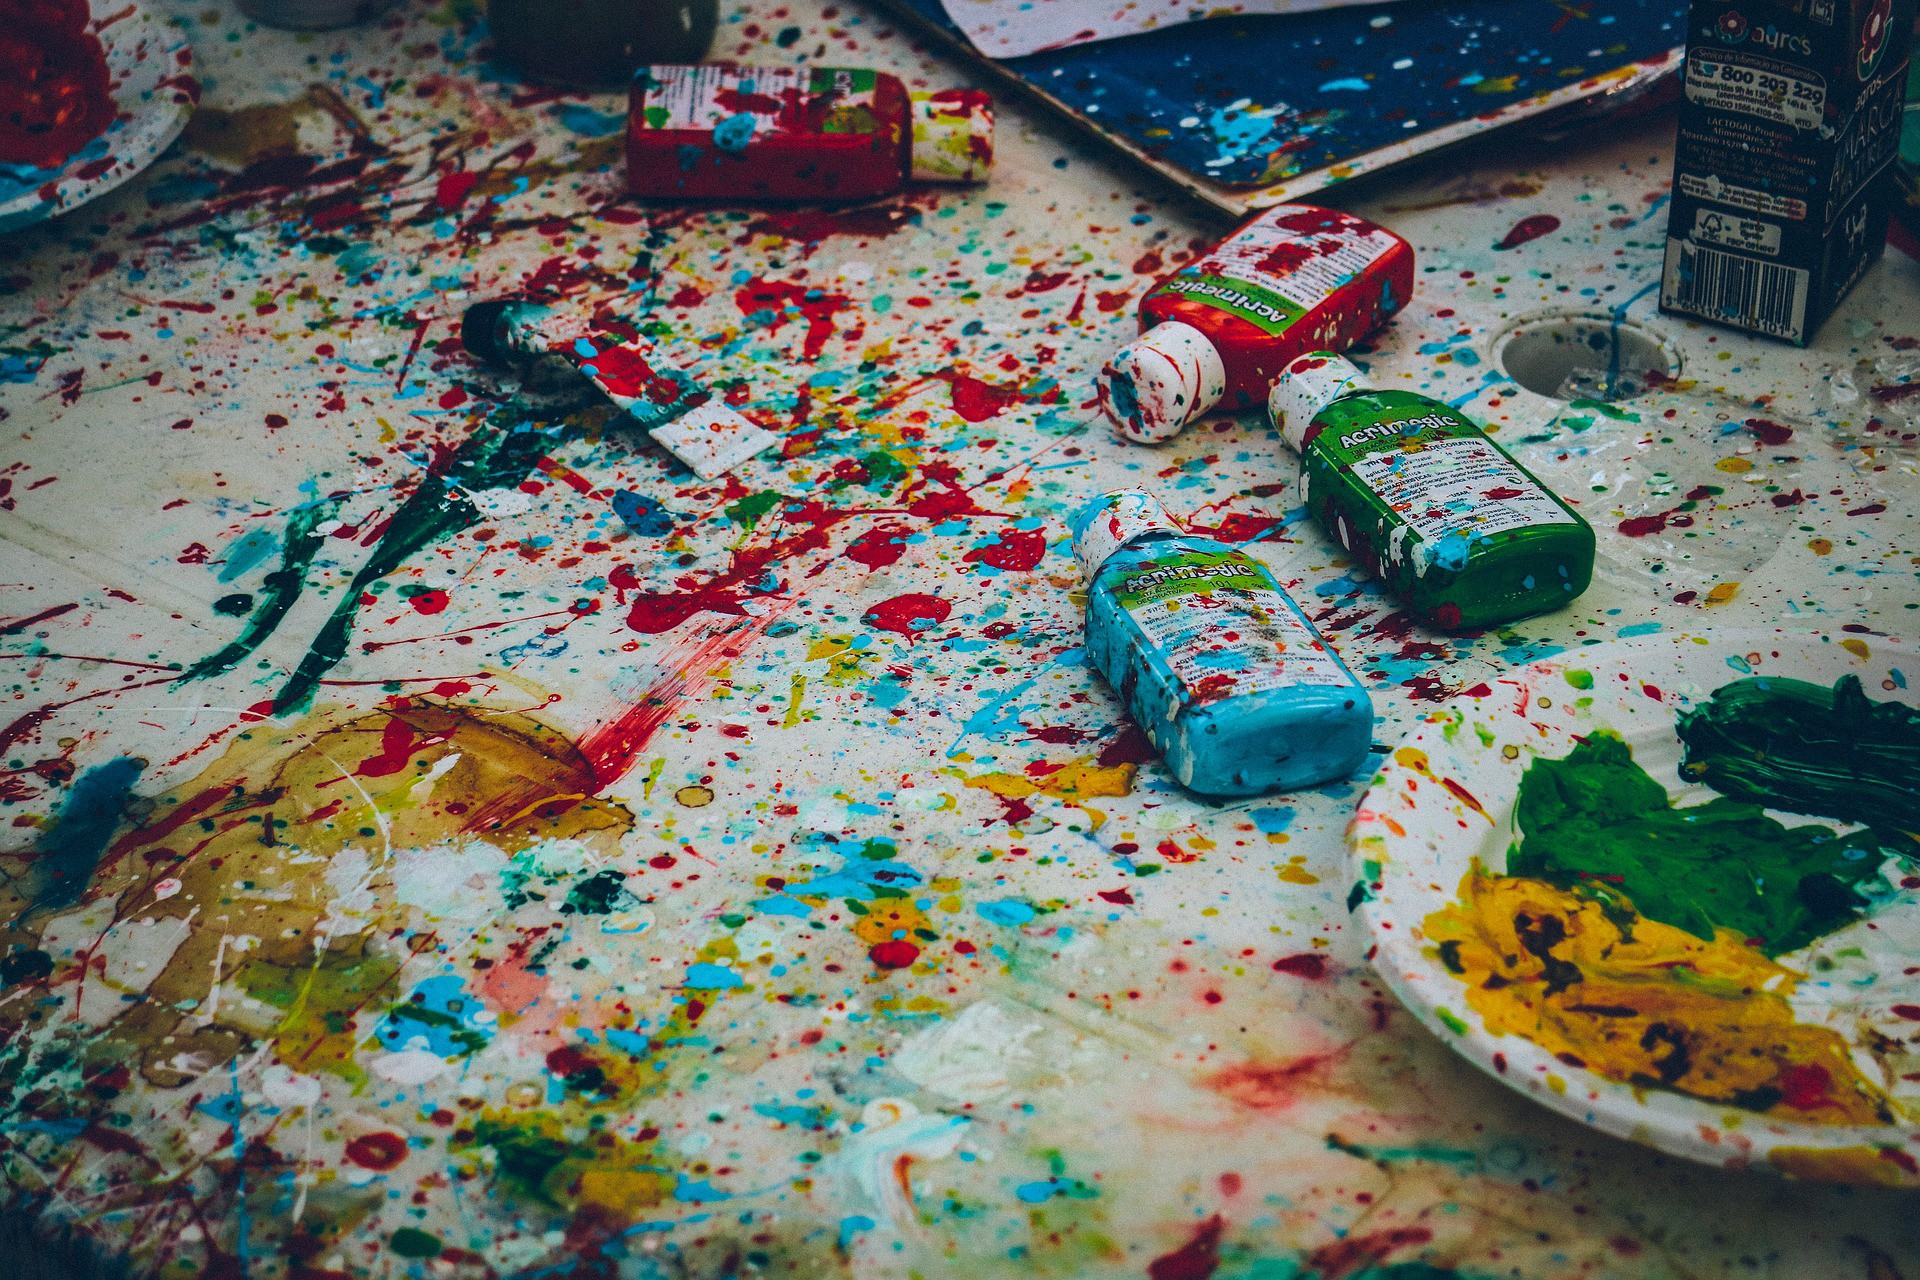 Splattered paints with a palette and art supplies.